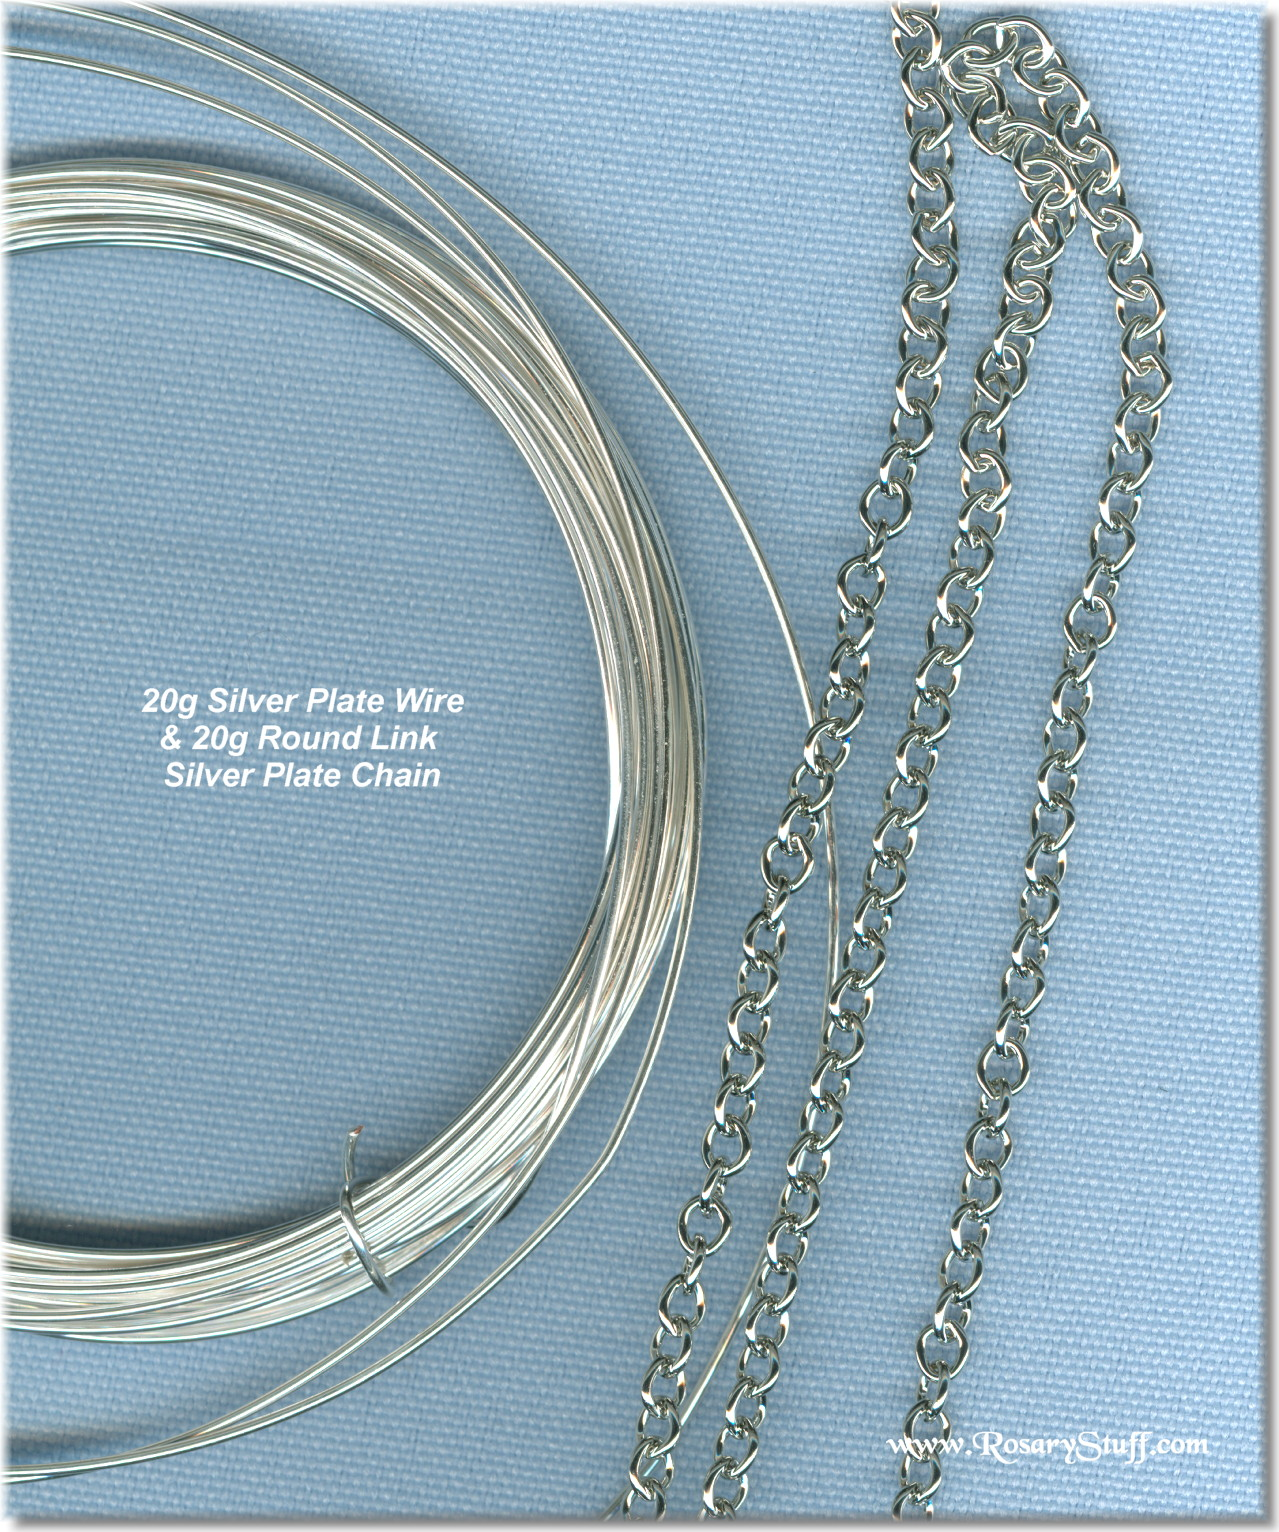 20g silver plate wire/round link chain